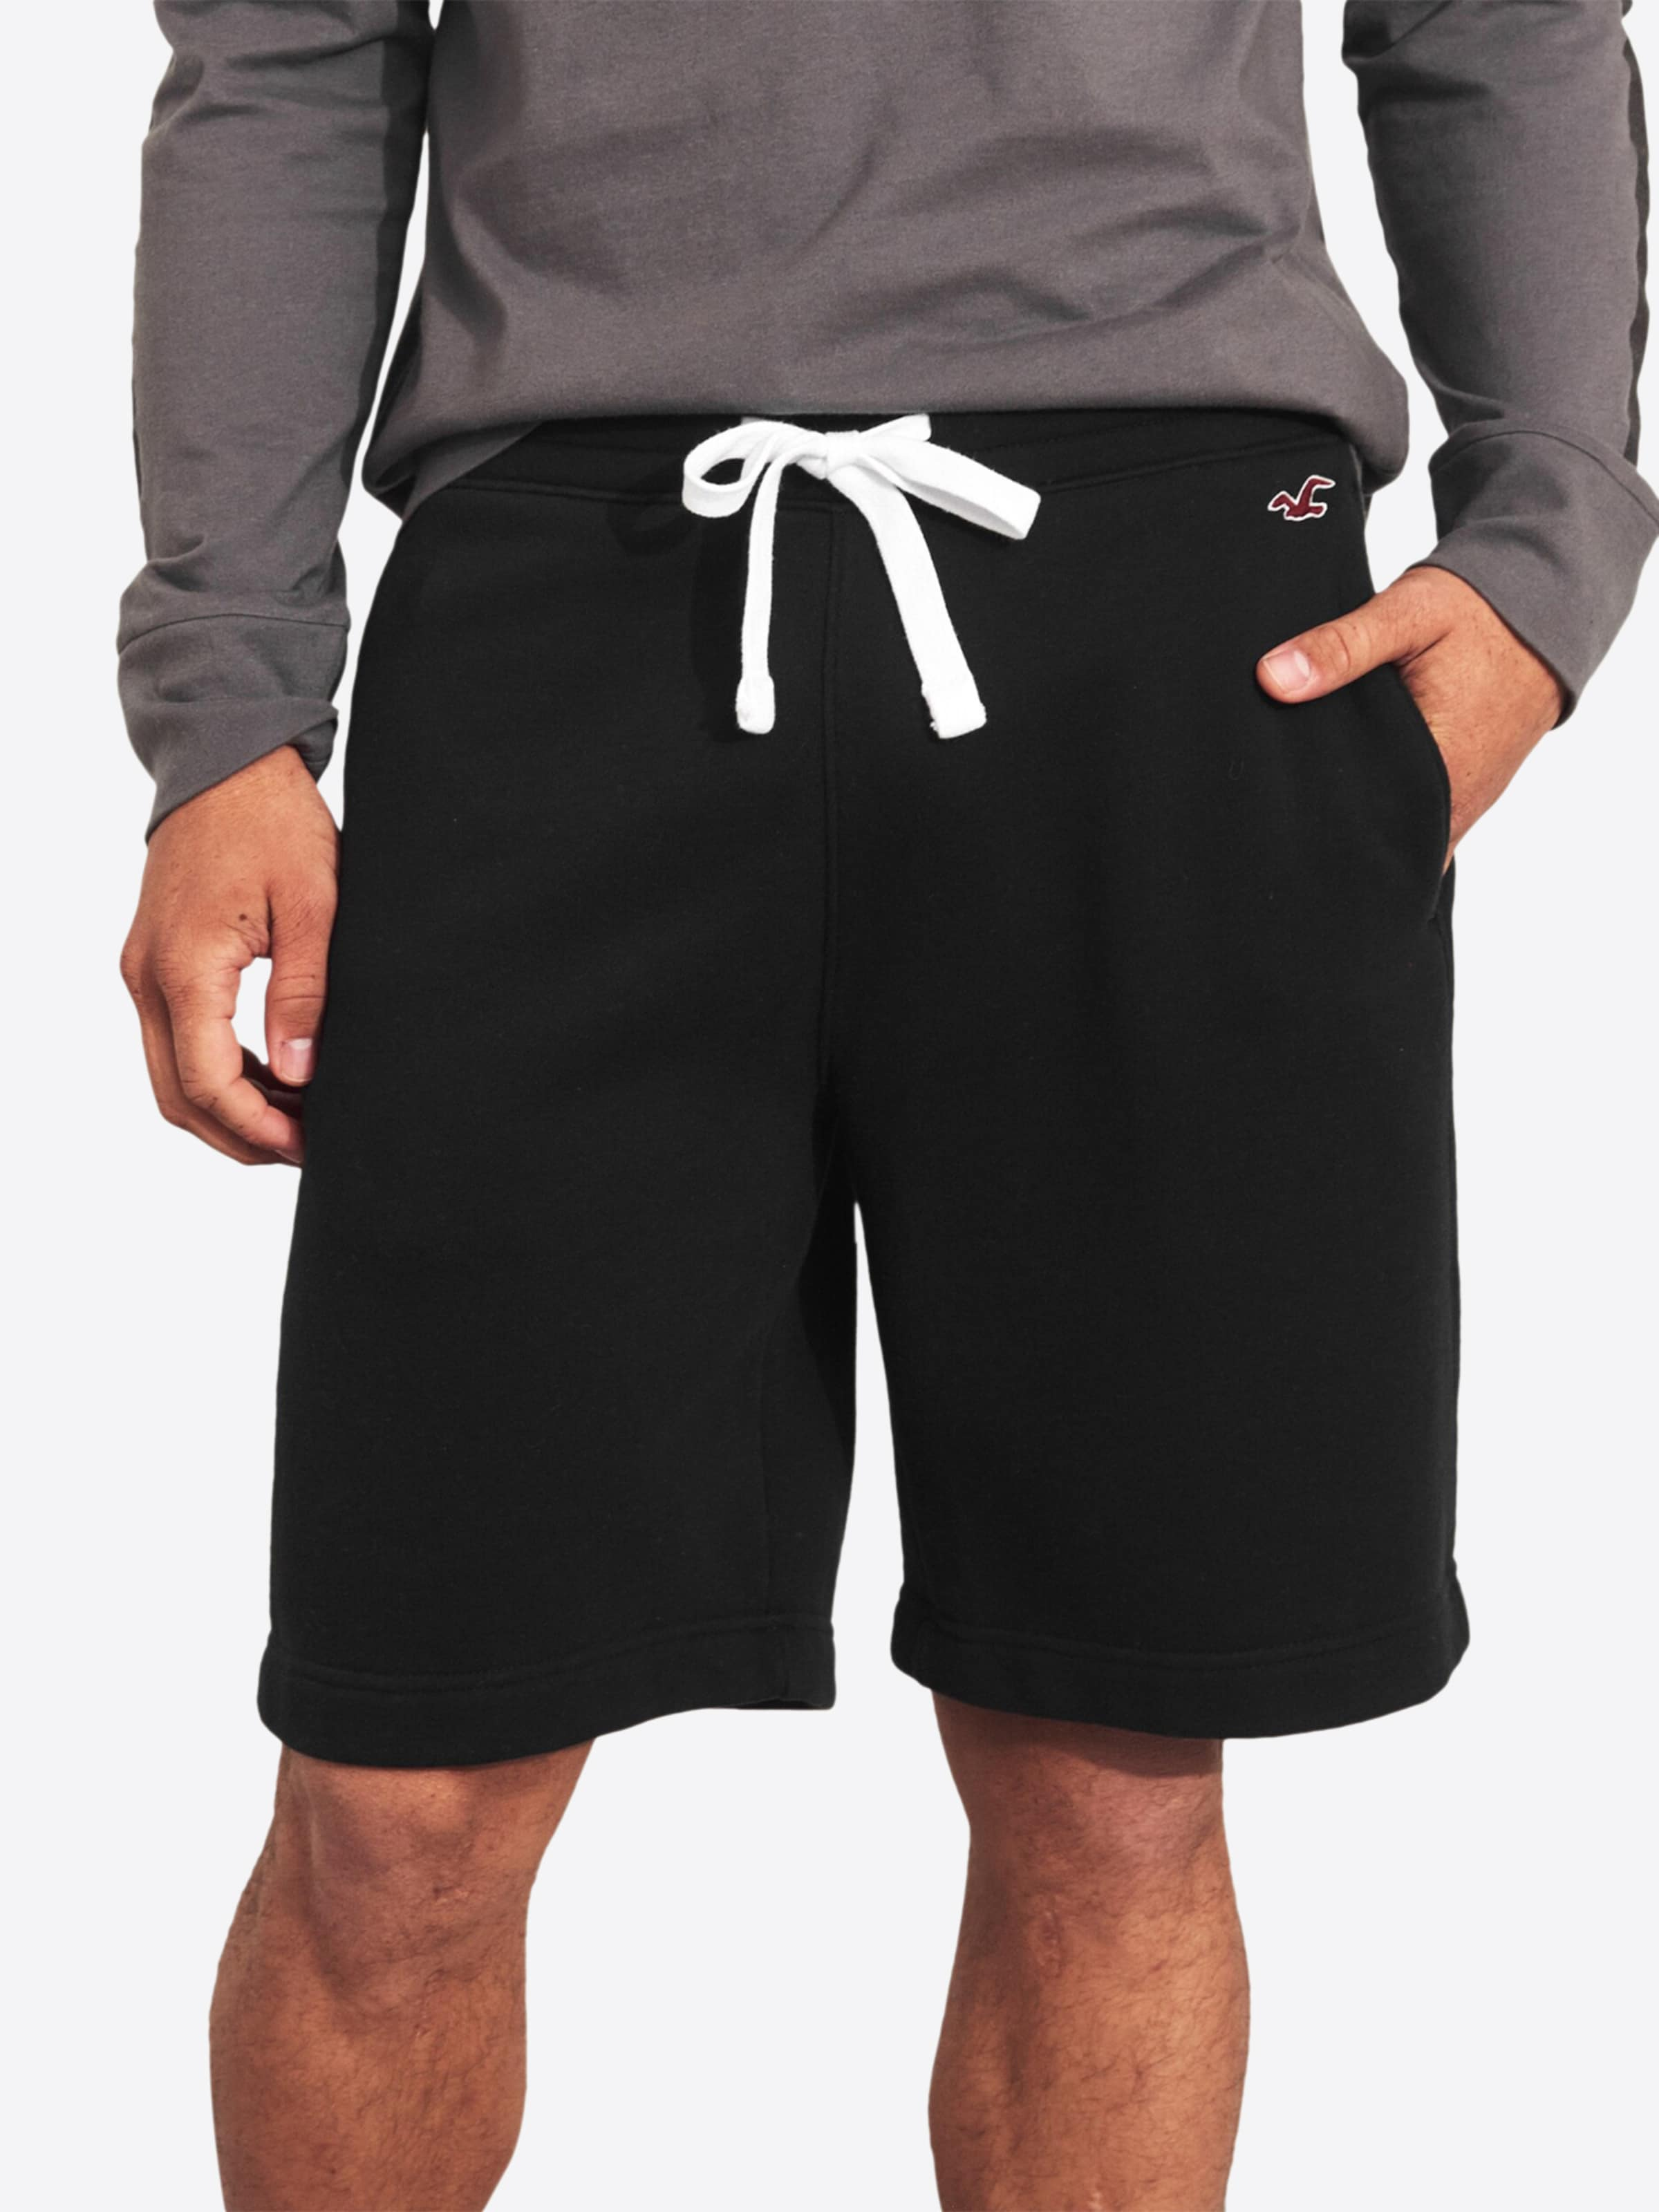 'fit' Shorts Hollister Schwarz In Hollister nOv8wyN0m